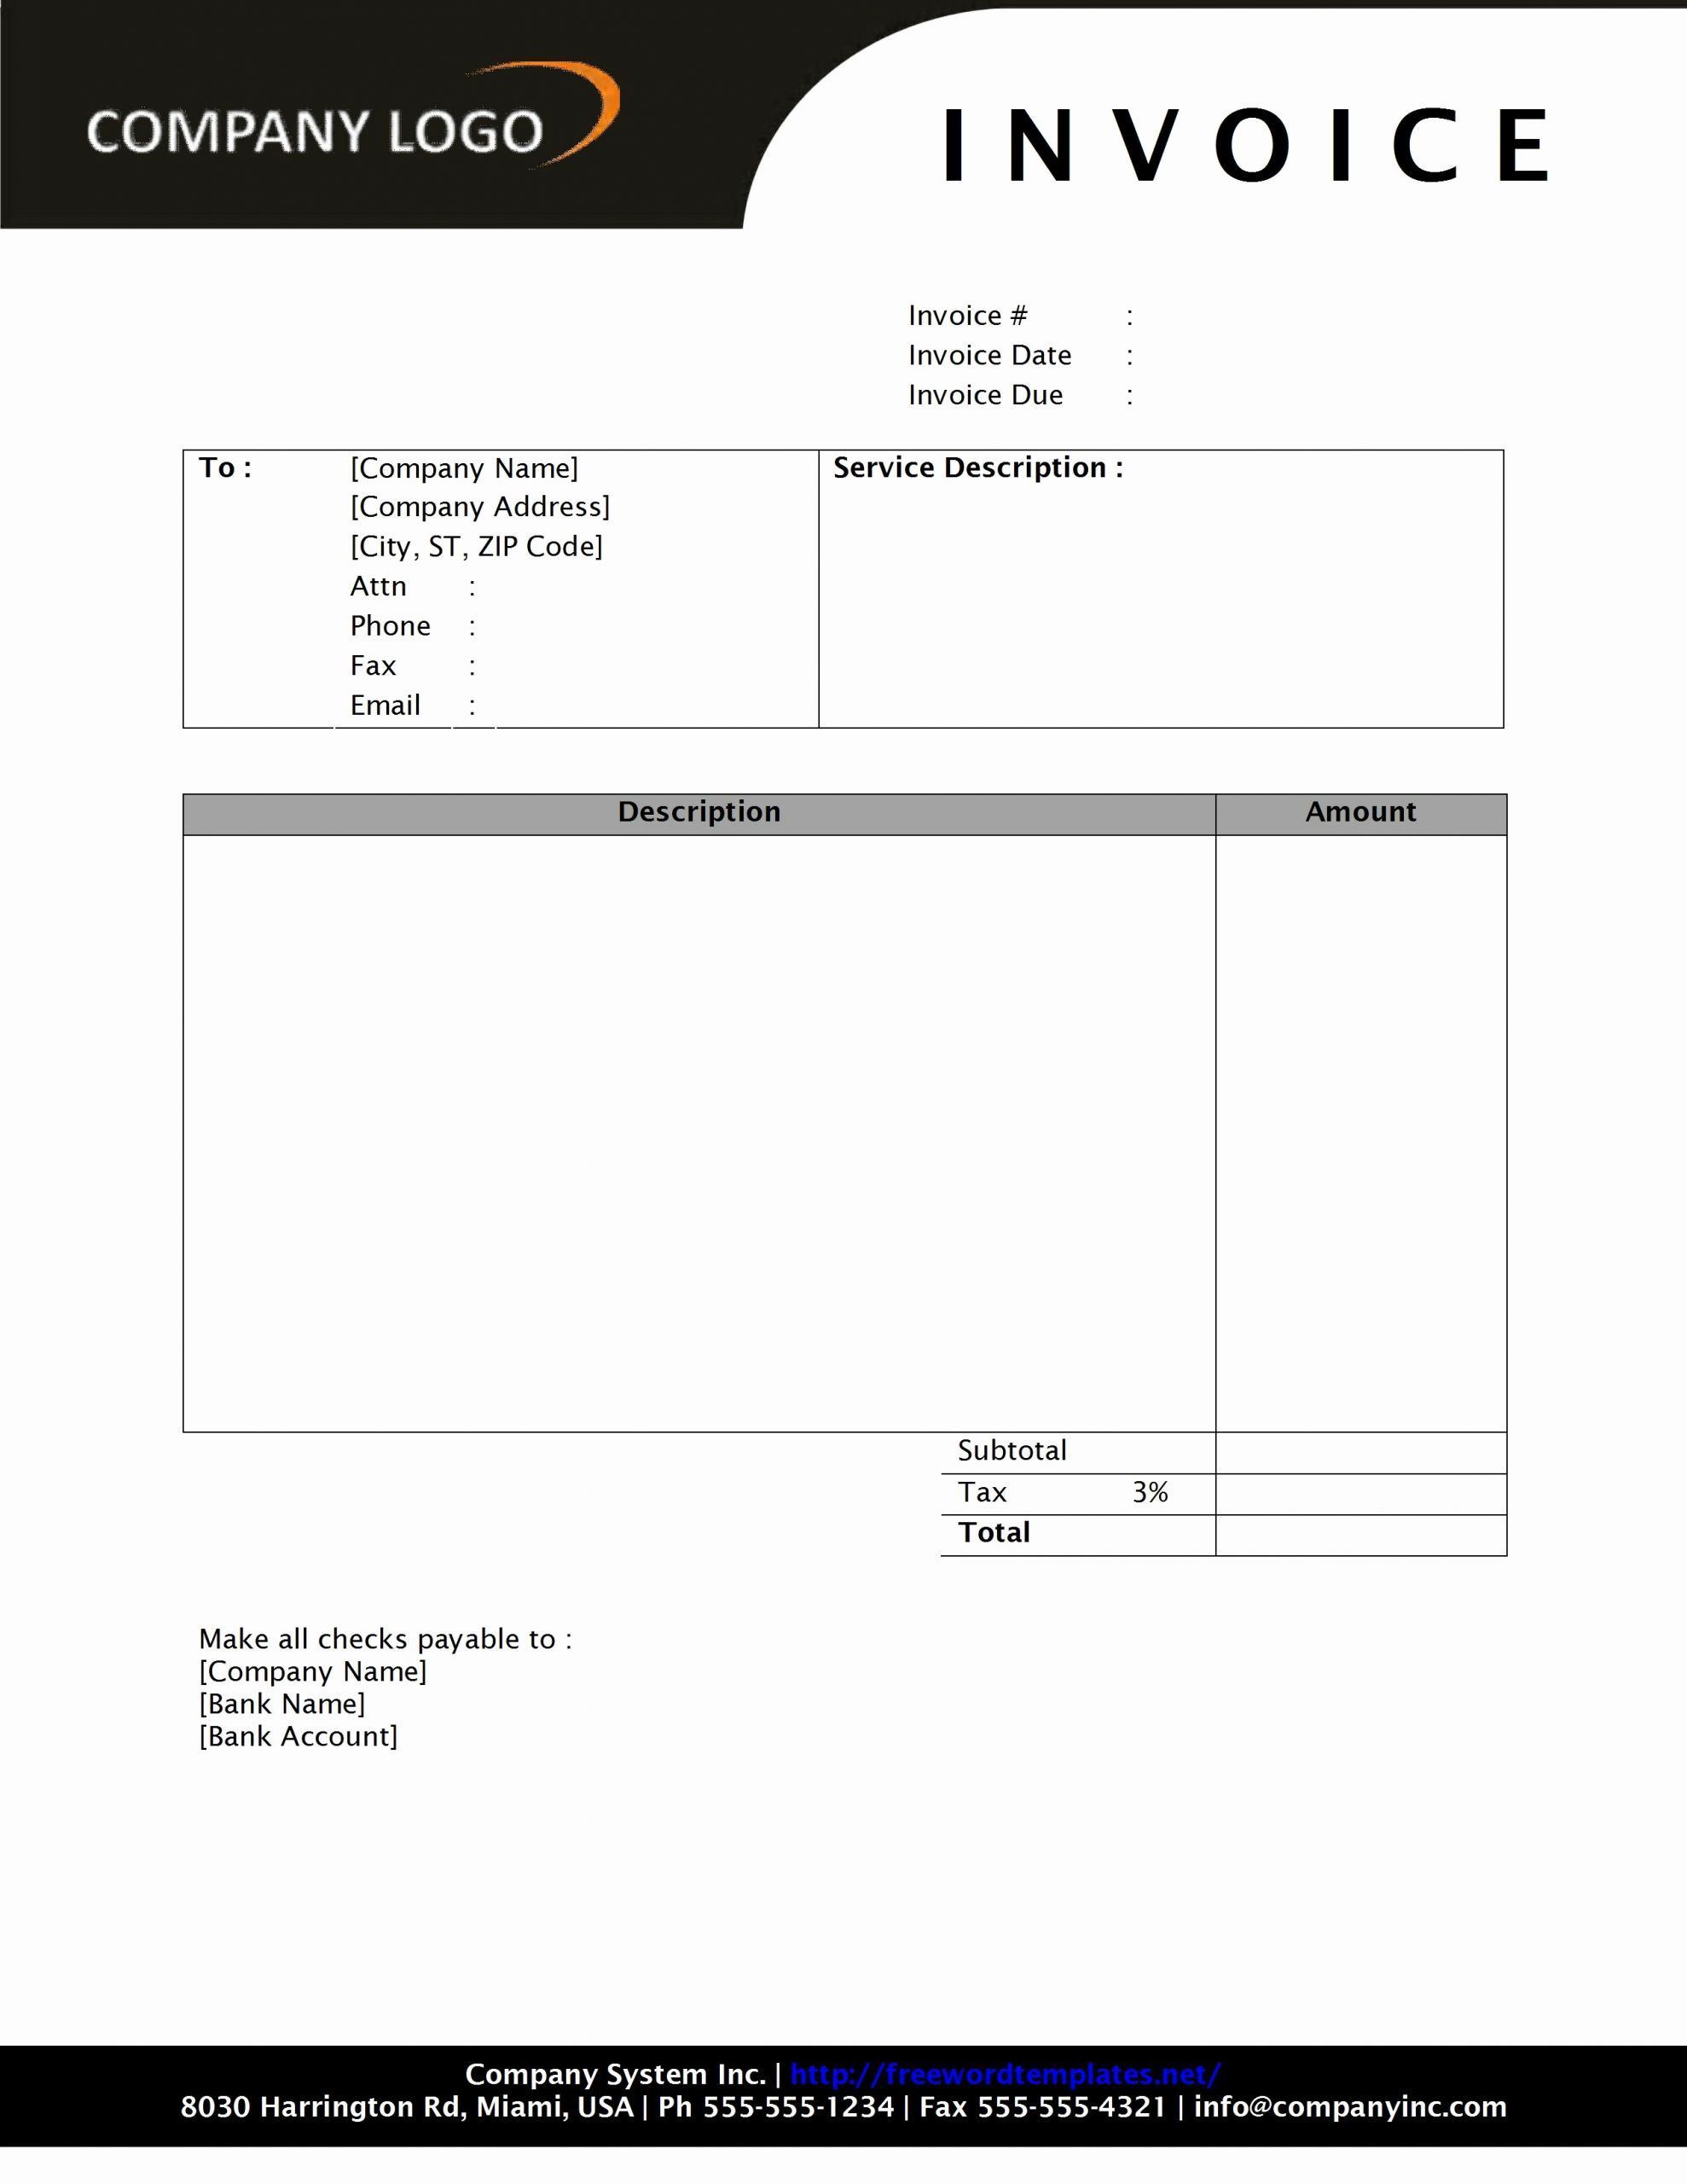 Free Printable Invoice Template Word Beautiful Invoice Template Word 2010